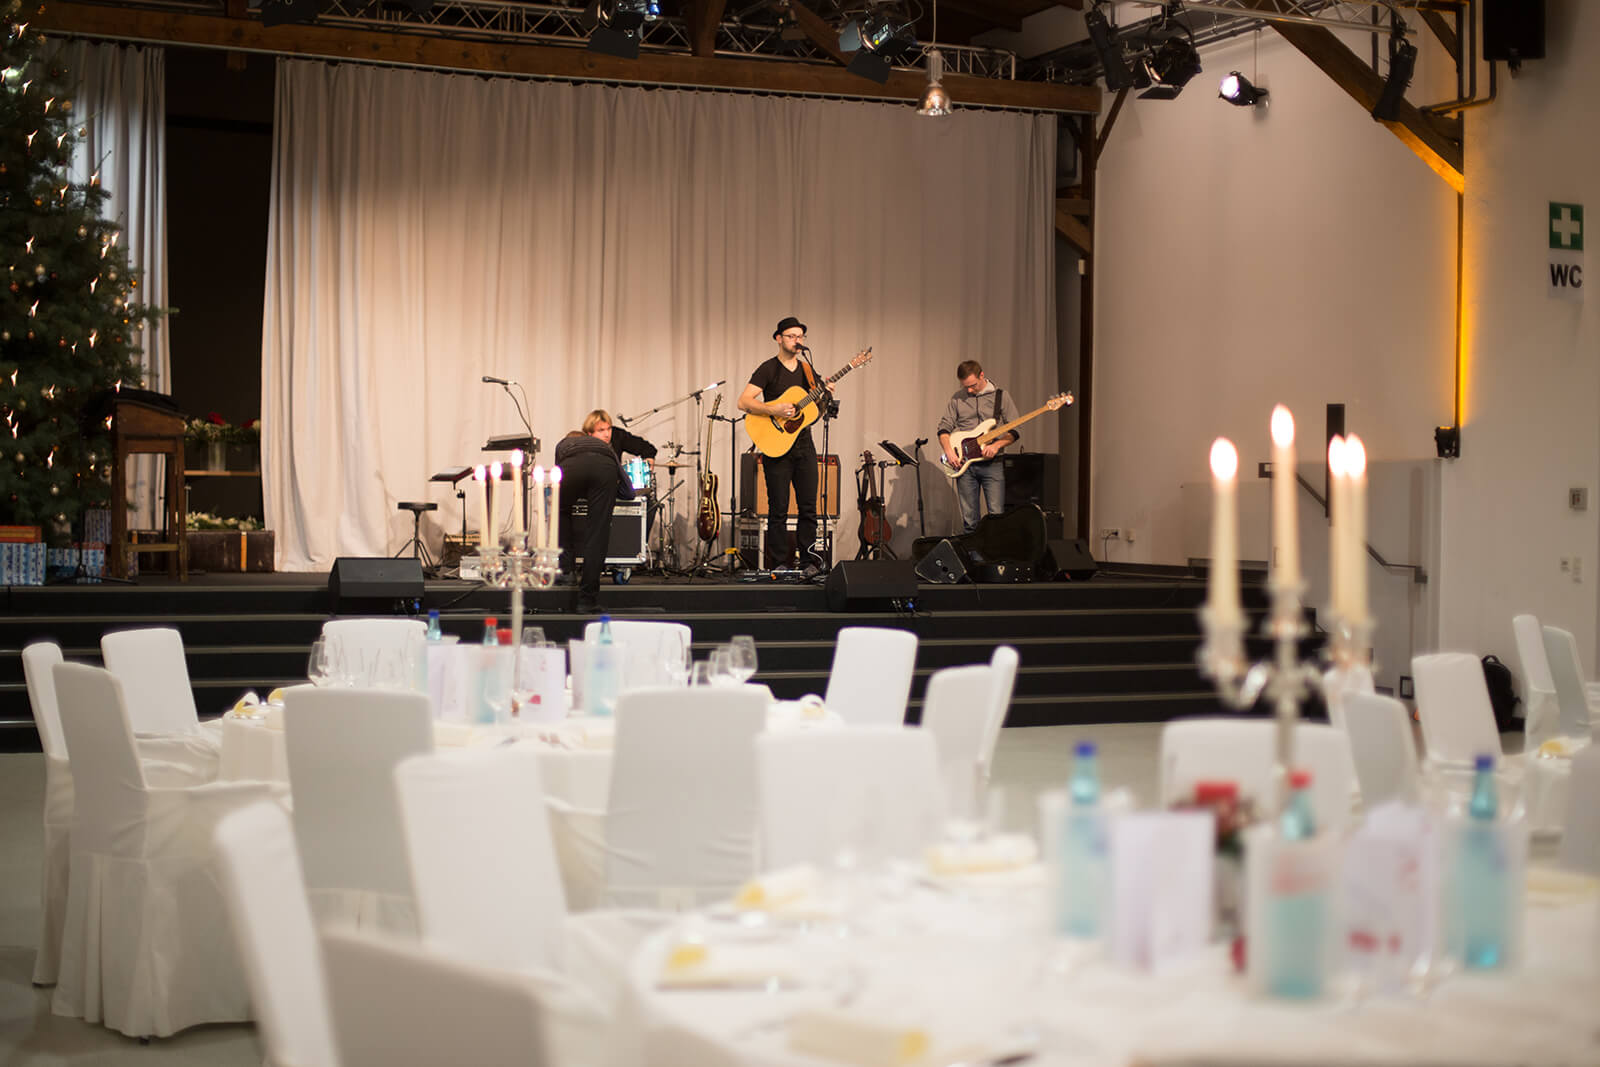 Güterboden Eventlocation in Radebeul bei Dresden – Event mit Livemusik